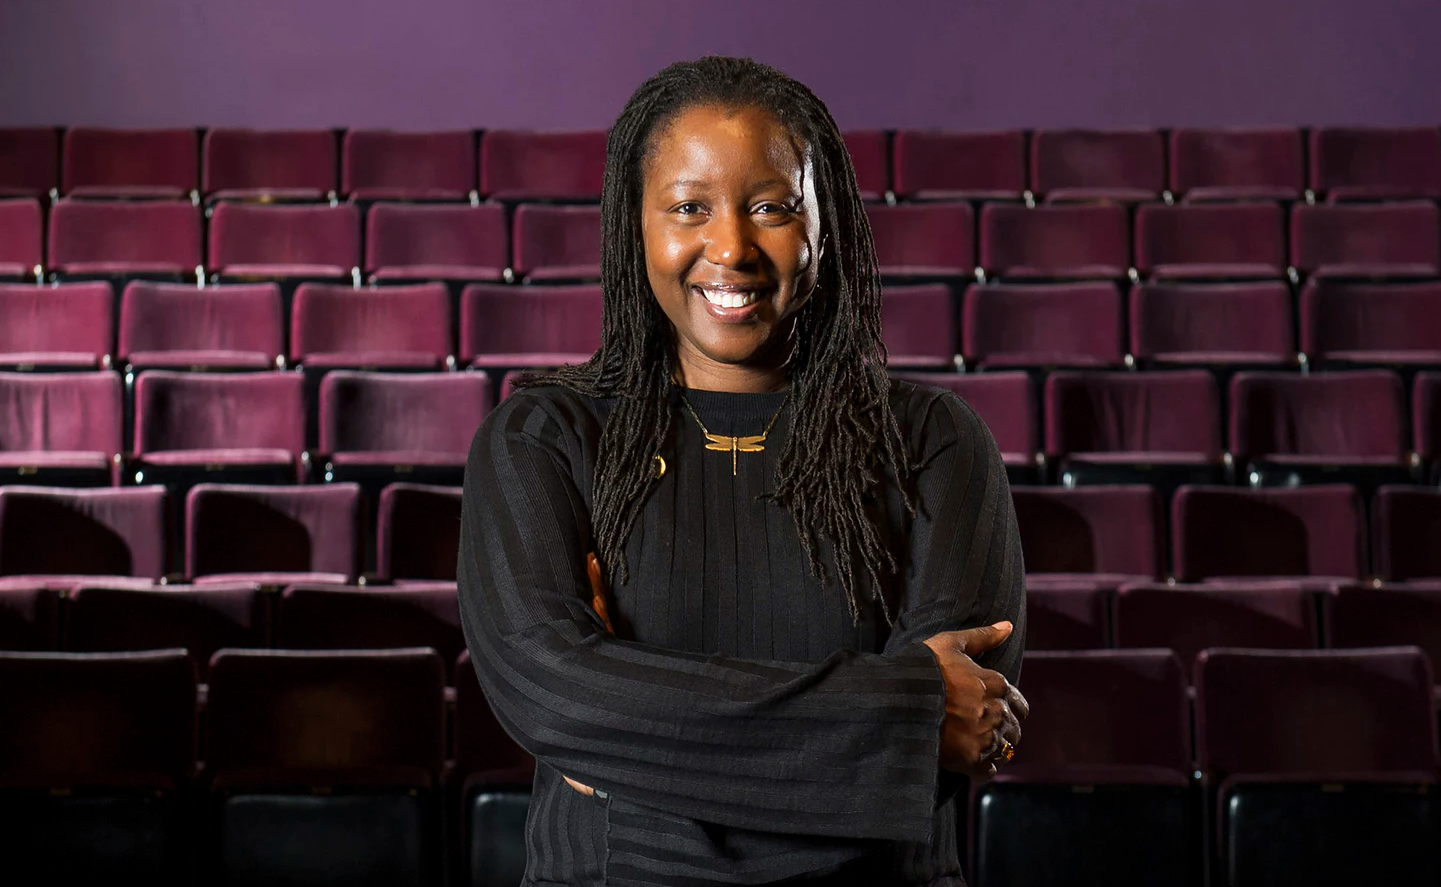 Nataki Garrett, Associate Artistic Director at DCPA. (Photo by Daniel Benner.)